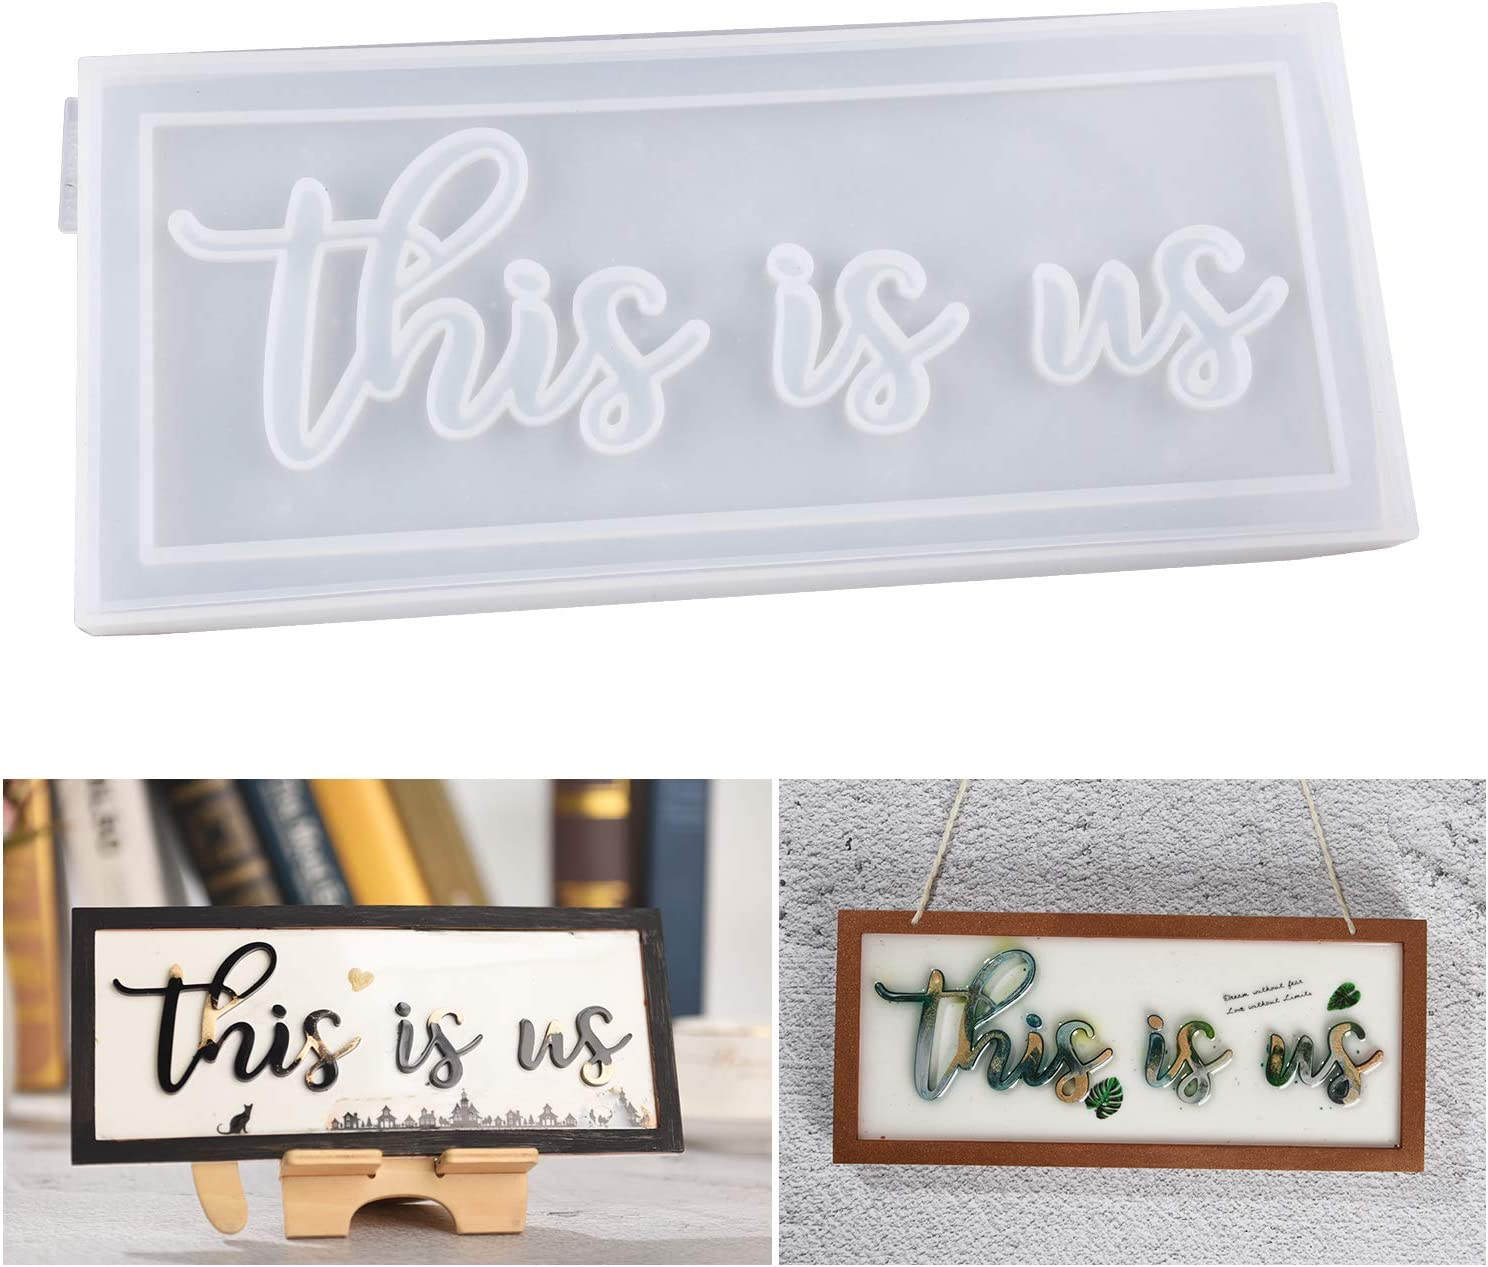 LET'S RESIN Word Sign Molds-This is us Sign Molds, Silicone Resin Molds Casting Epoxy Resin Molds to Indoor/Home Decor, Home Sign/Wall Art/Wall Hanging